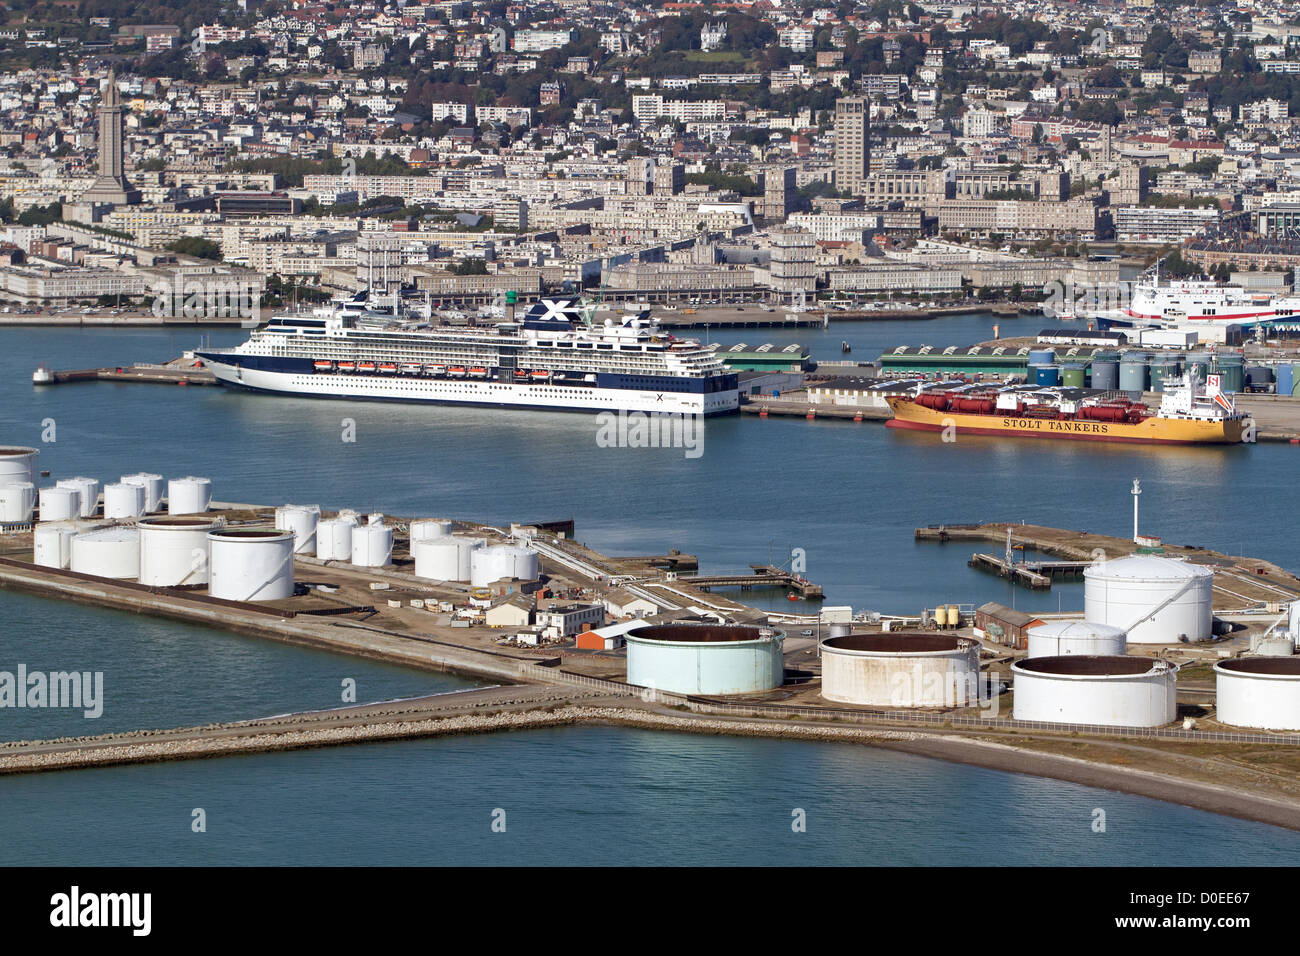 AERIAL VIEW OF THE BIG MARITIME PORT OF LE HAVRE (CRUISE AND CARGO PORT) LE HAVRE SEINE-MARITIME (76) FRANCE - Stock Image